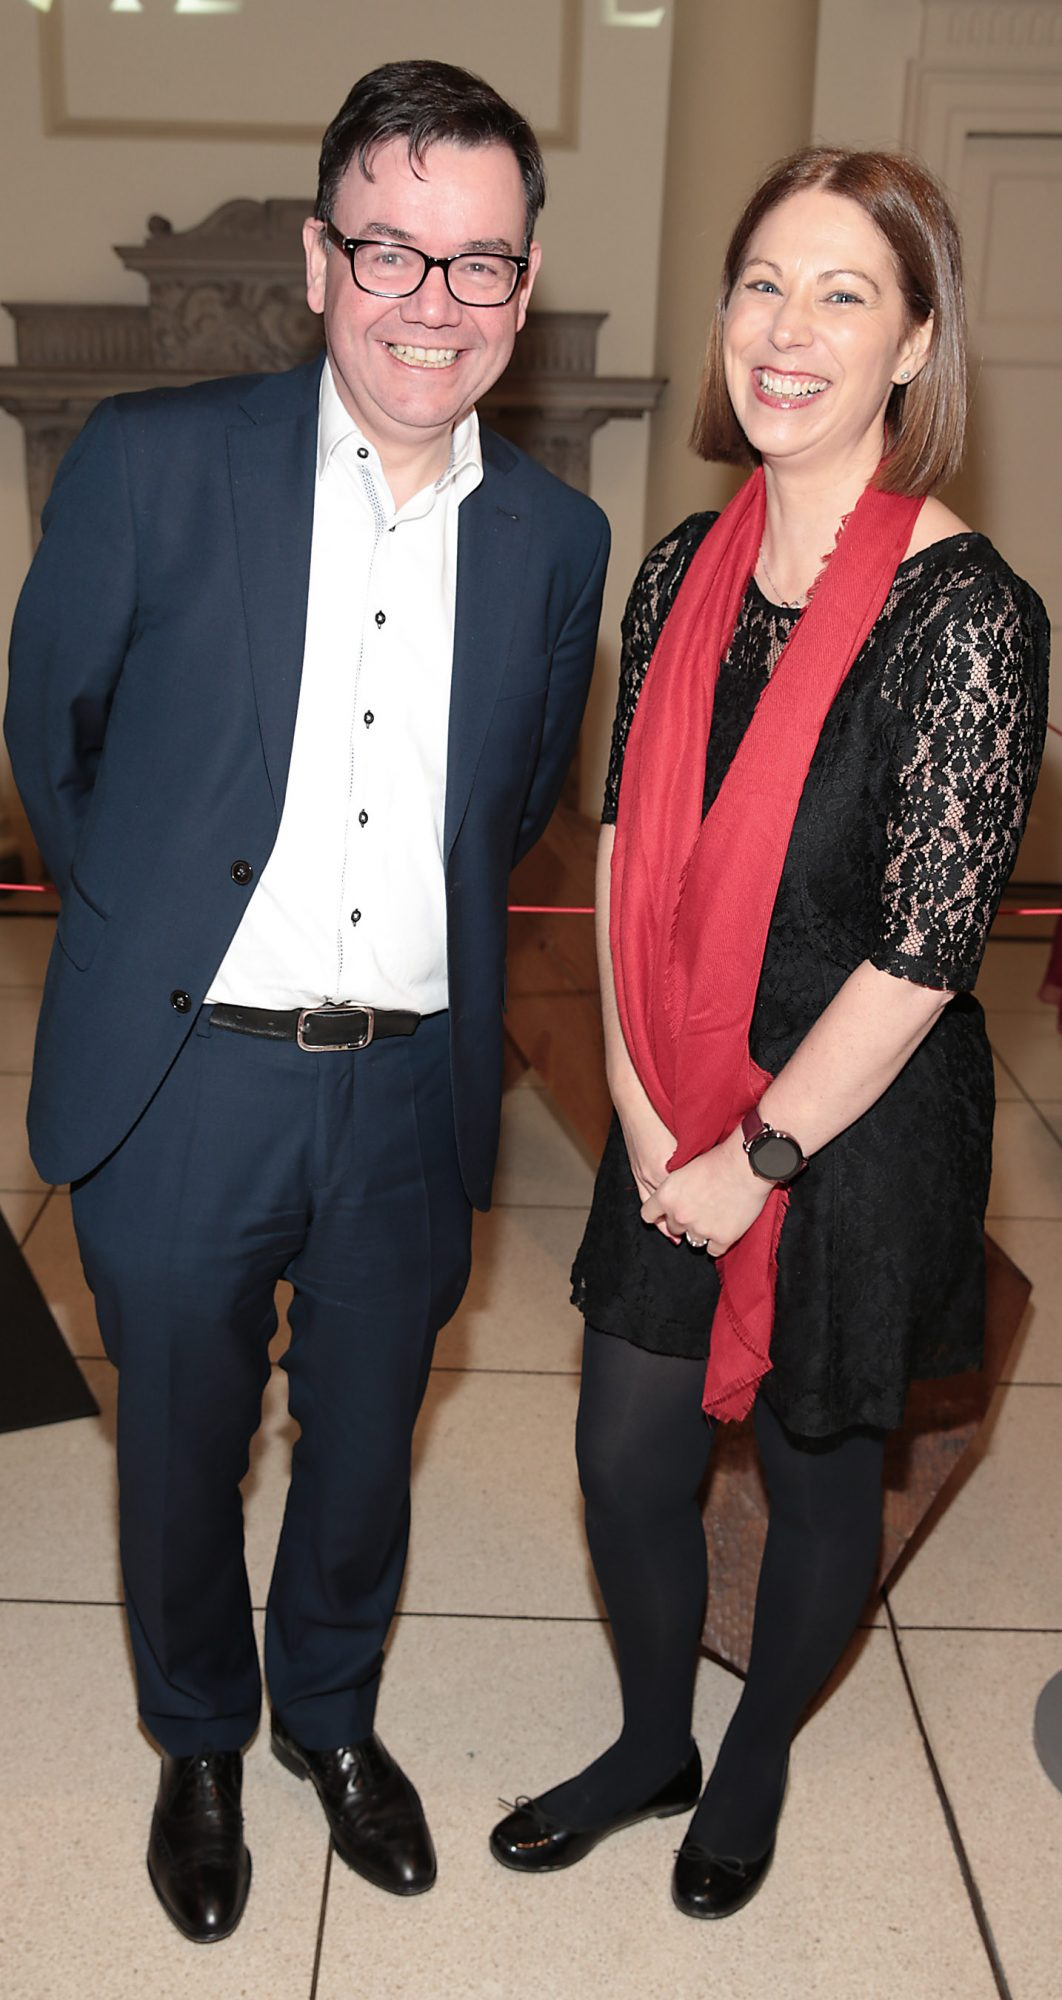 Peter Gallogly and Giselle Mansfield pictured at the official opening event of Dublin Chinese New Year Festival 2019 at The Hugh Lane Gallery sponsored by Kildare Village. Dublin Chinese New Year Festival runs until 17th February for more see www.dublinchinesenewyear.com   Pic Brian McEvoy